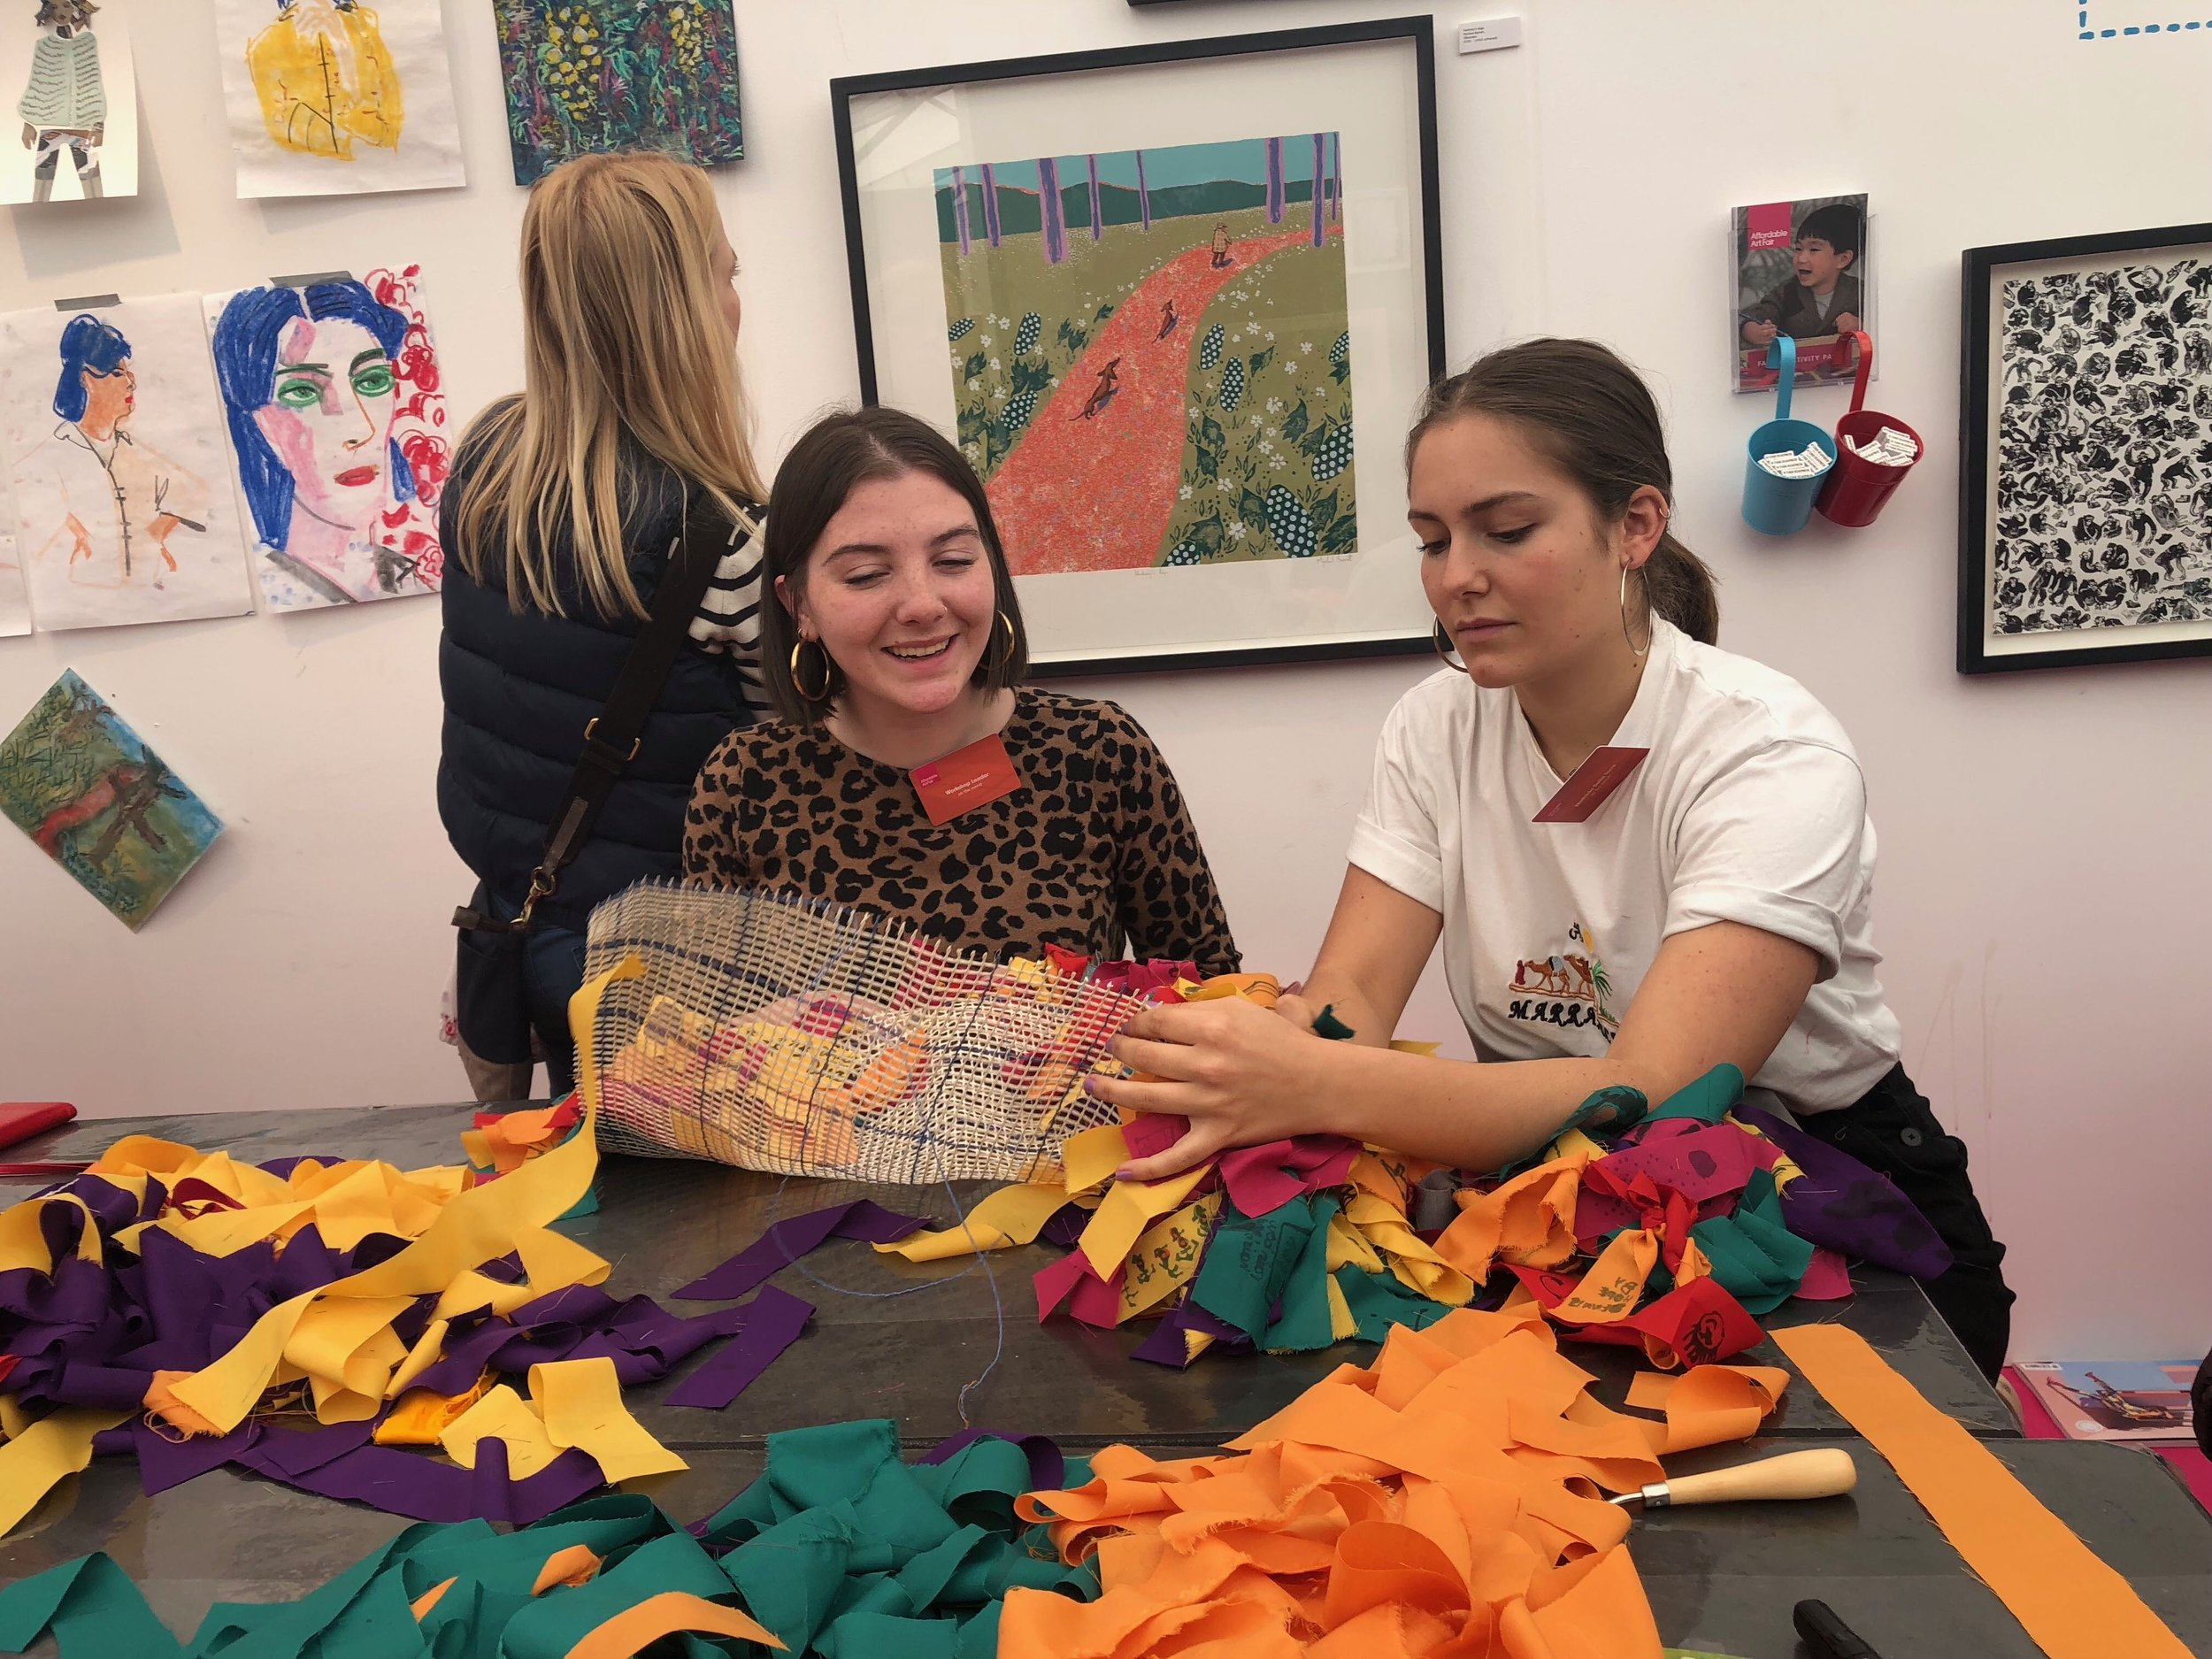 Mathilda and Molly making a rug at the space